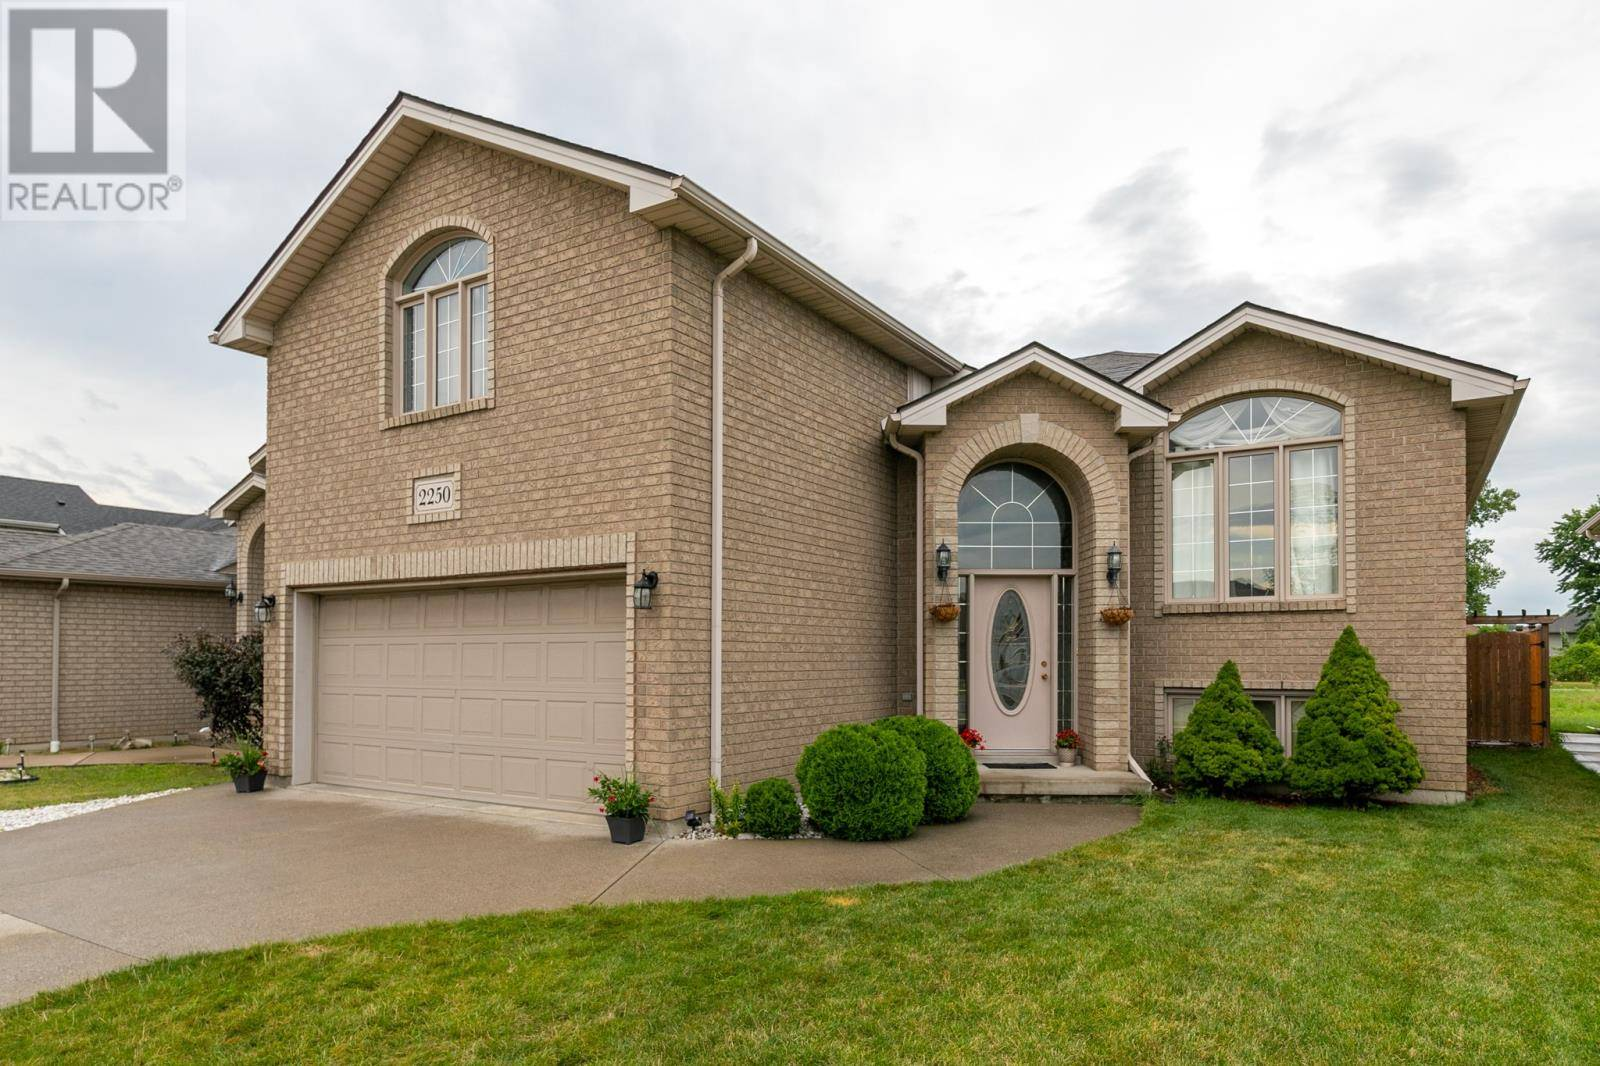 House for sale at 2250 Northway  Windsor Ontario - MLS: 19023154